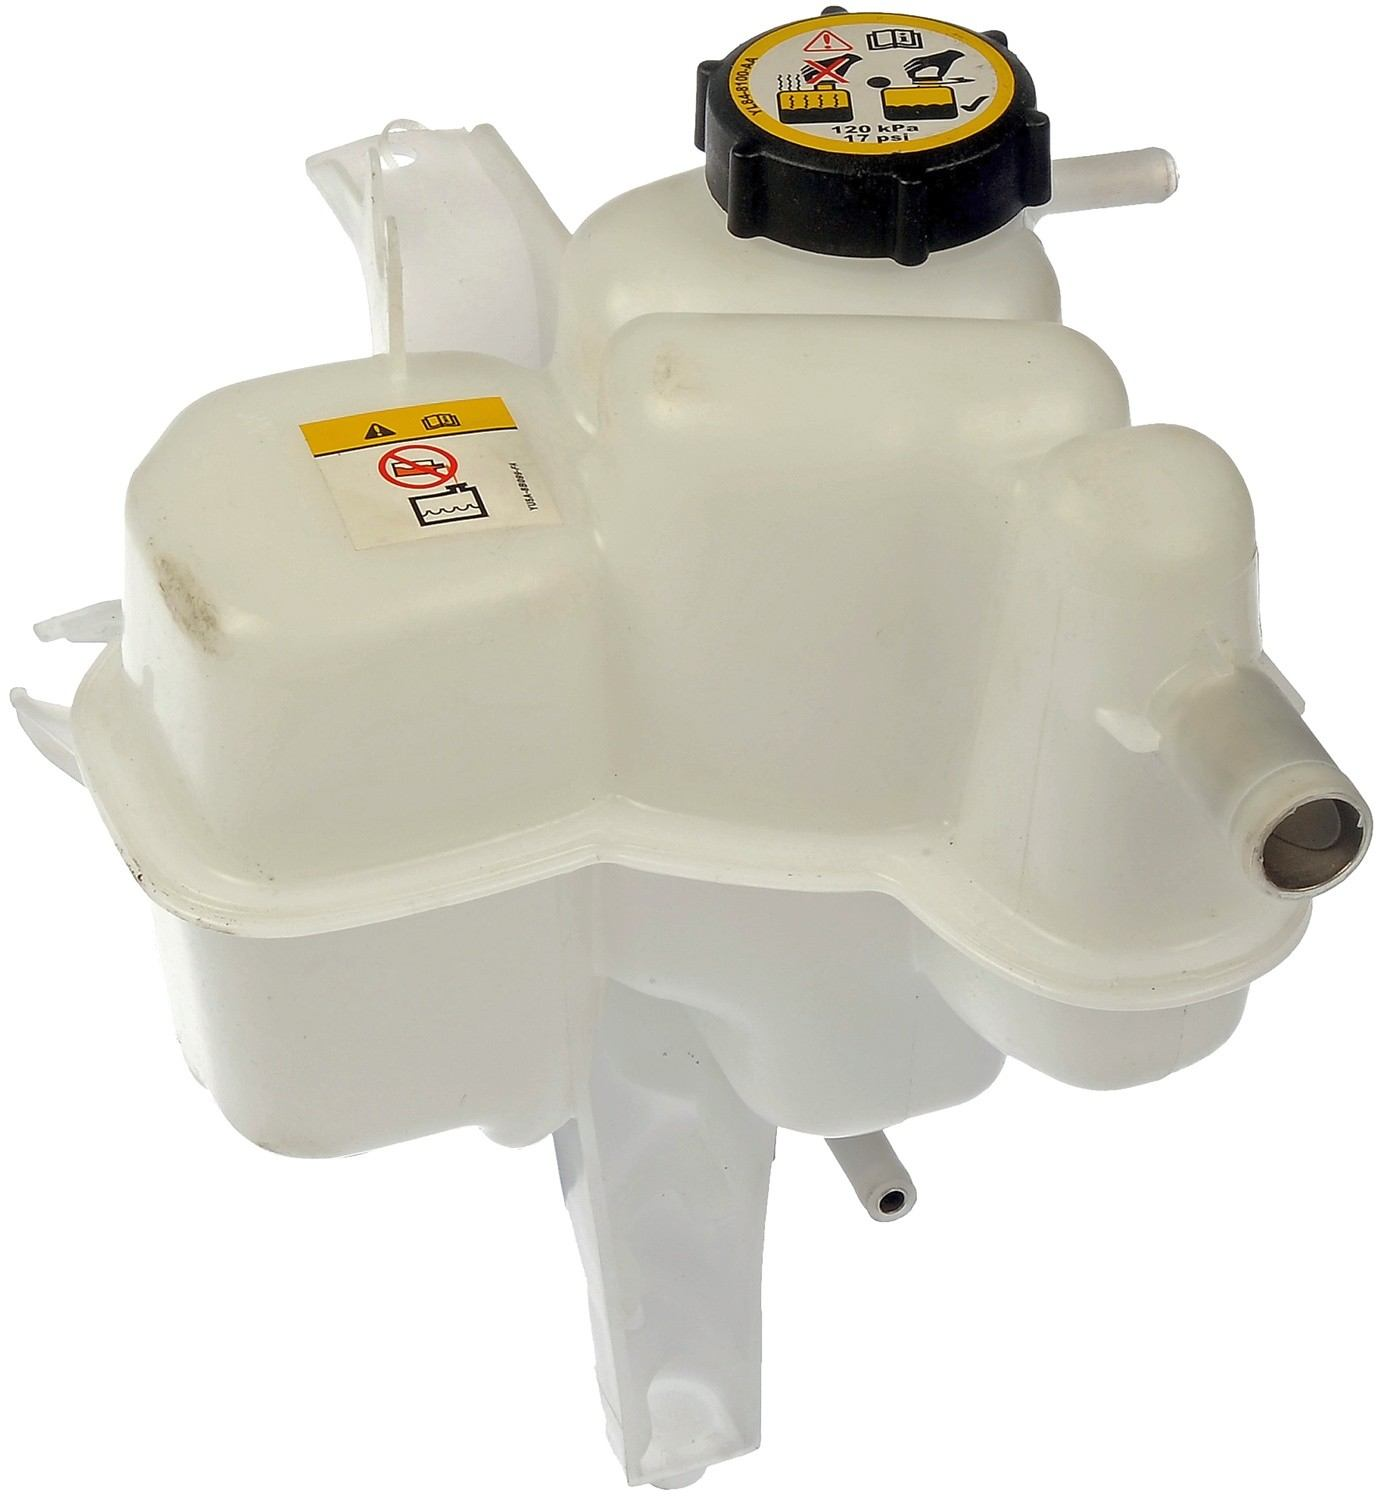 DORMAN OE SOLUTIONS - Engine Coolant Recovery Tank (Front) - DRE 603-215